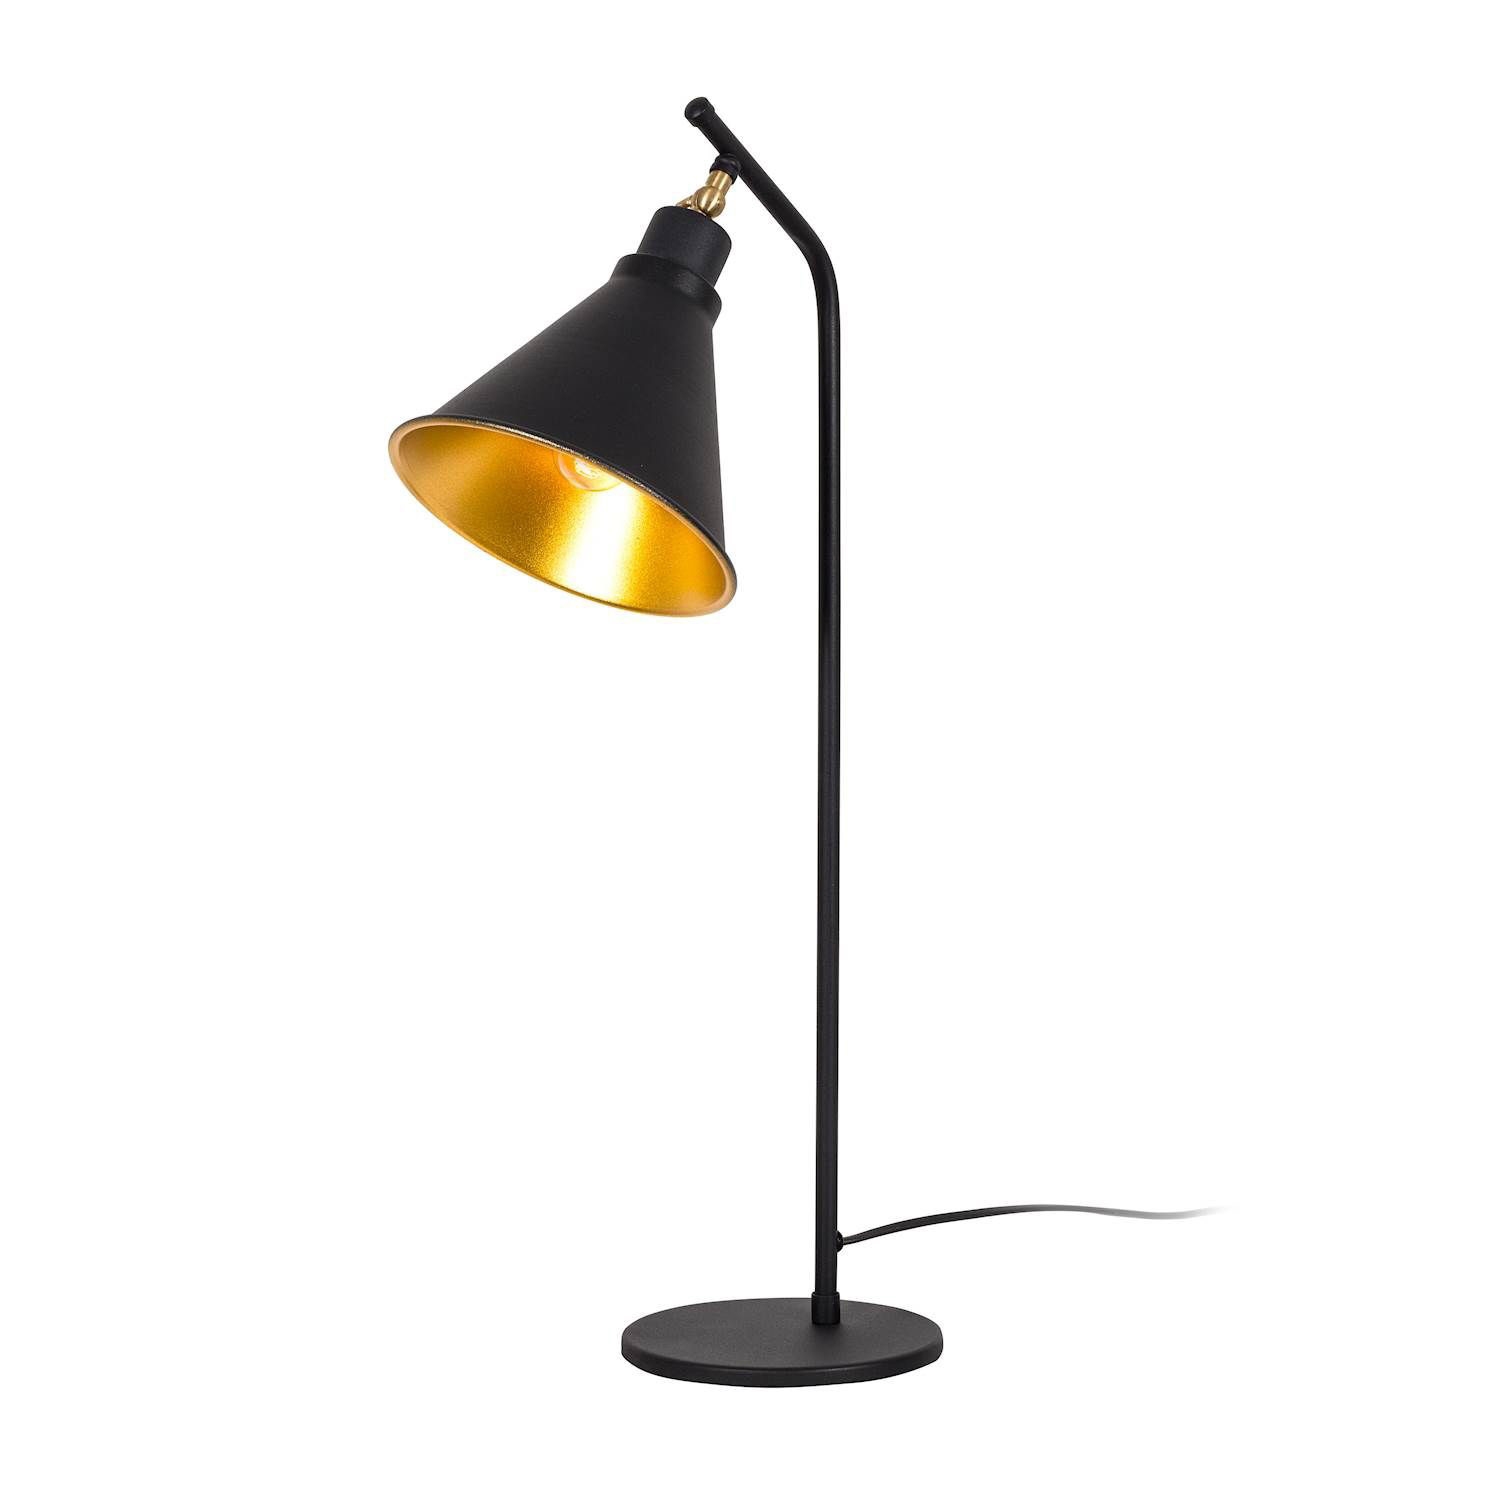 72c462b1aae4ce4ba72e507bd200b8a7 Medium. Industrial Modern Black Gold Table  Lamp